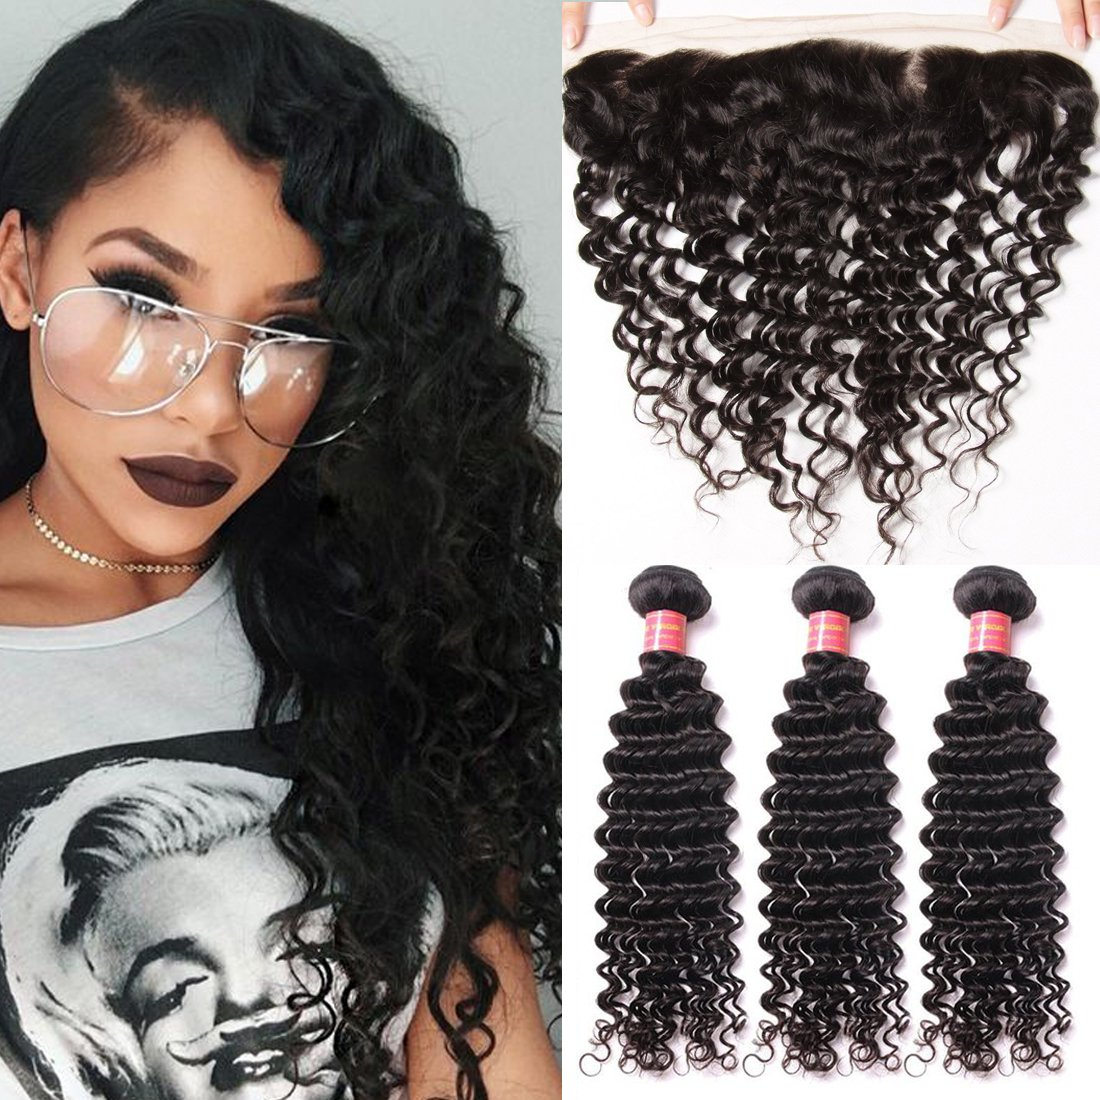 Ali Julia Hair Brazilian Virgin Deep Curly Wave Hair Bundles with Frontal Lace Closure 100% Unprocessed Human Hair Weave Extensions Natural Color (22 24 26+20 inch, Frontal with Bundles) by Yilian (Image #7)